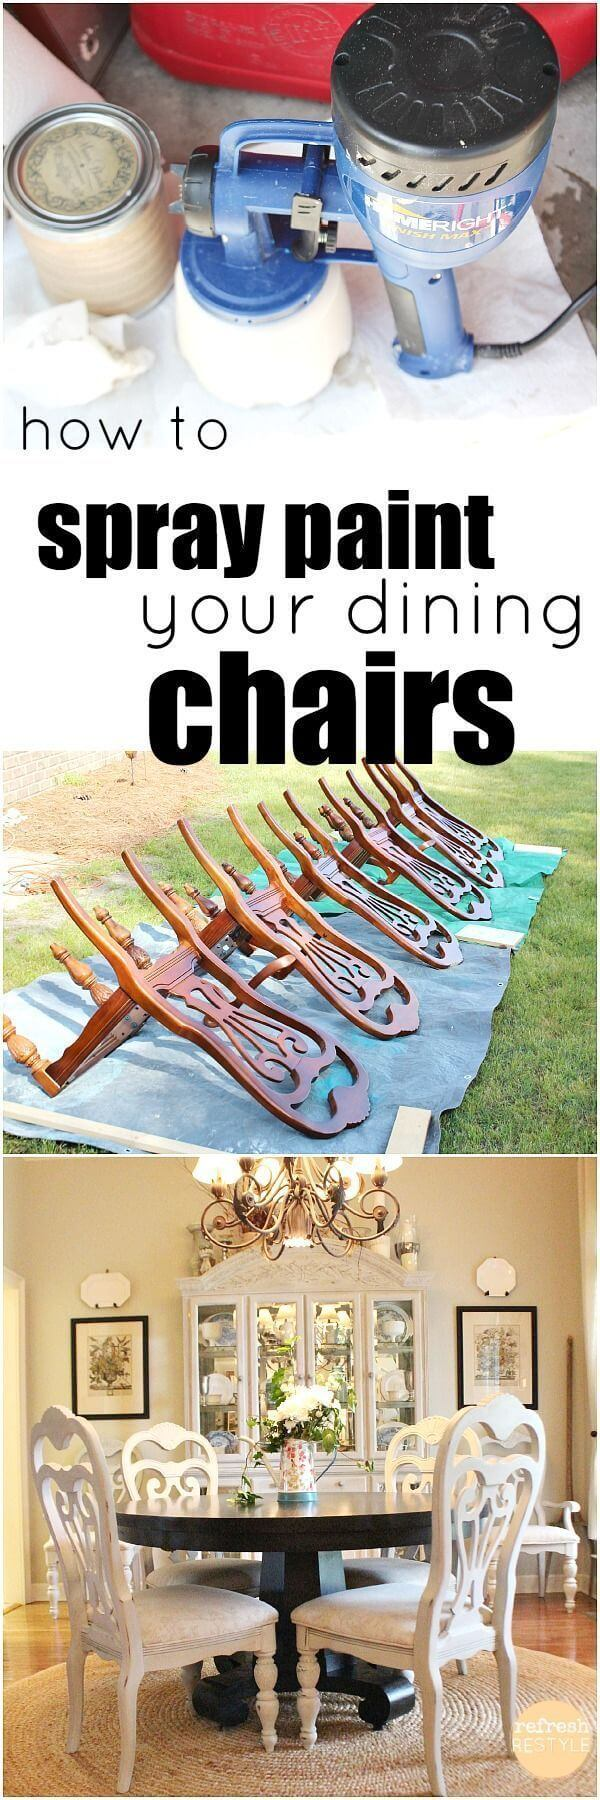 Spray-Painted-Anew Furniture Makeover Ideas